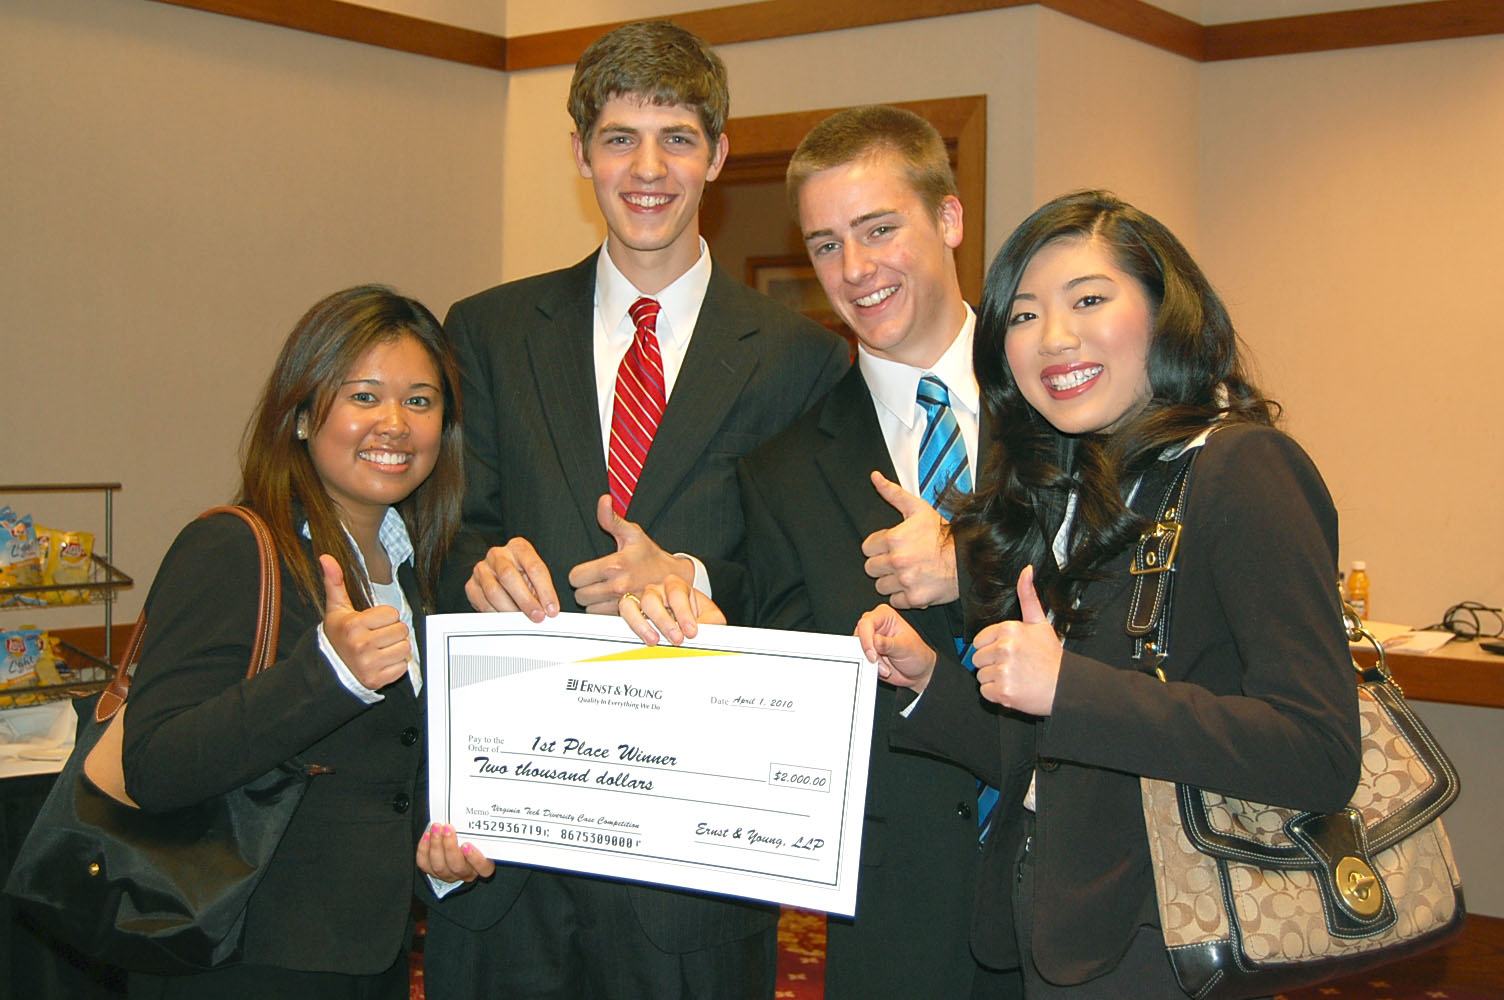 Diversity case competition winners, from left to right are Sunny Senedara, Sam Banks, Ian Hamre, and Denise Kee.